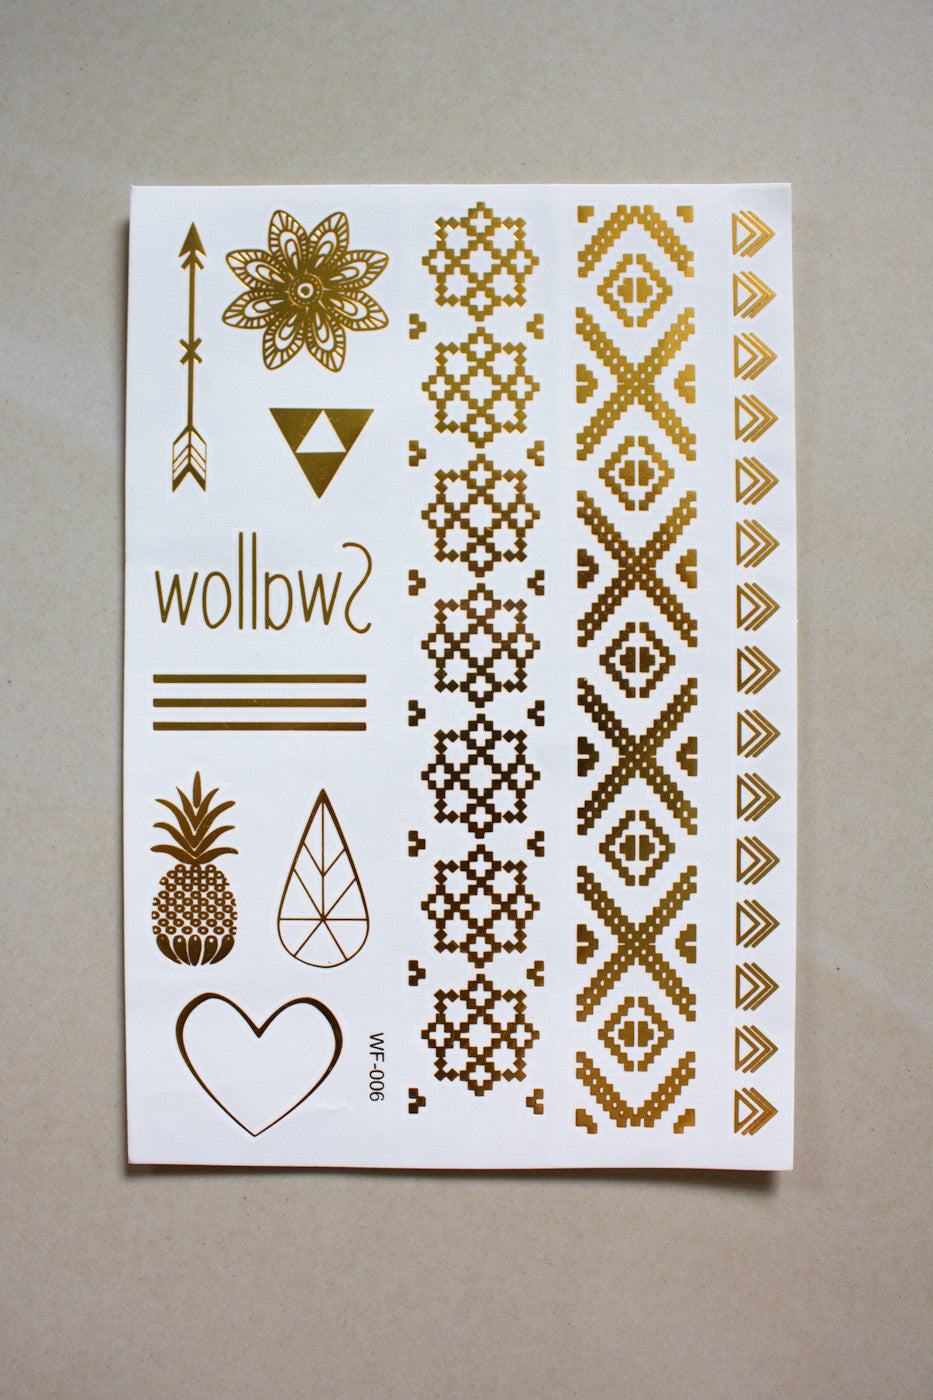 Metallic Temporary Tattoos - isabella - Peep Boutique - www.peepb.com - 6